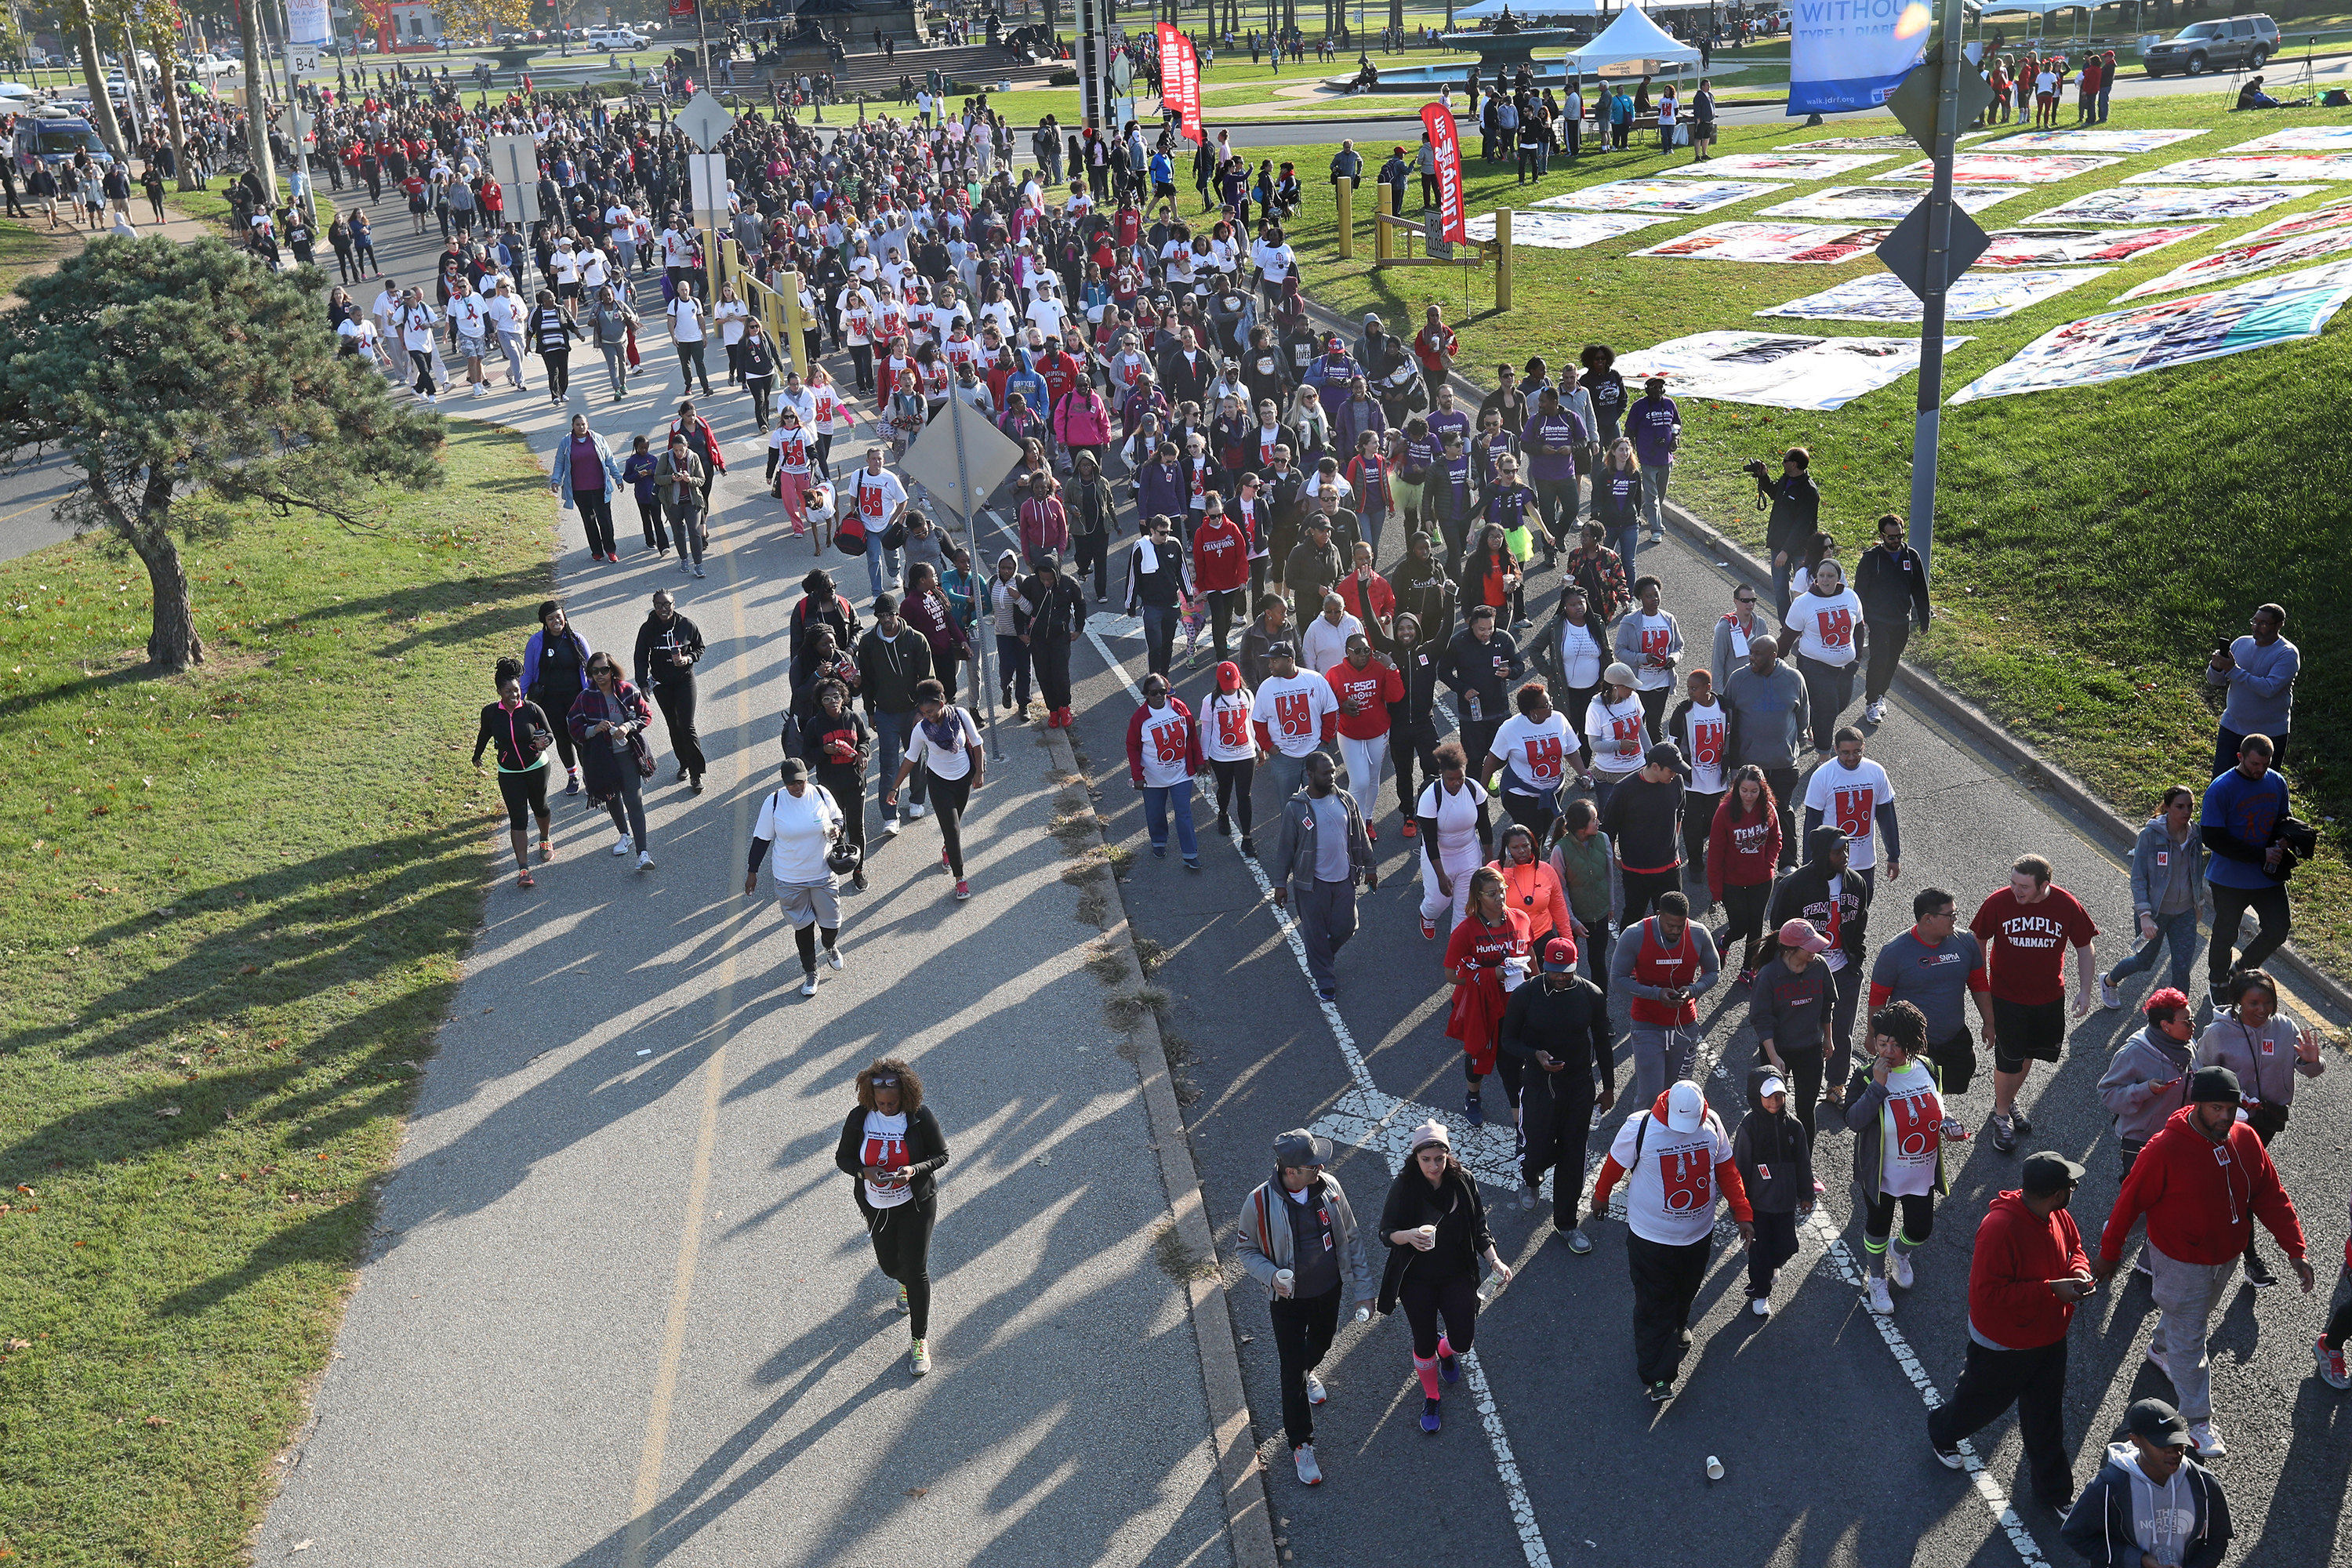 Participants in the 2016 AIDS Walk Phiily